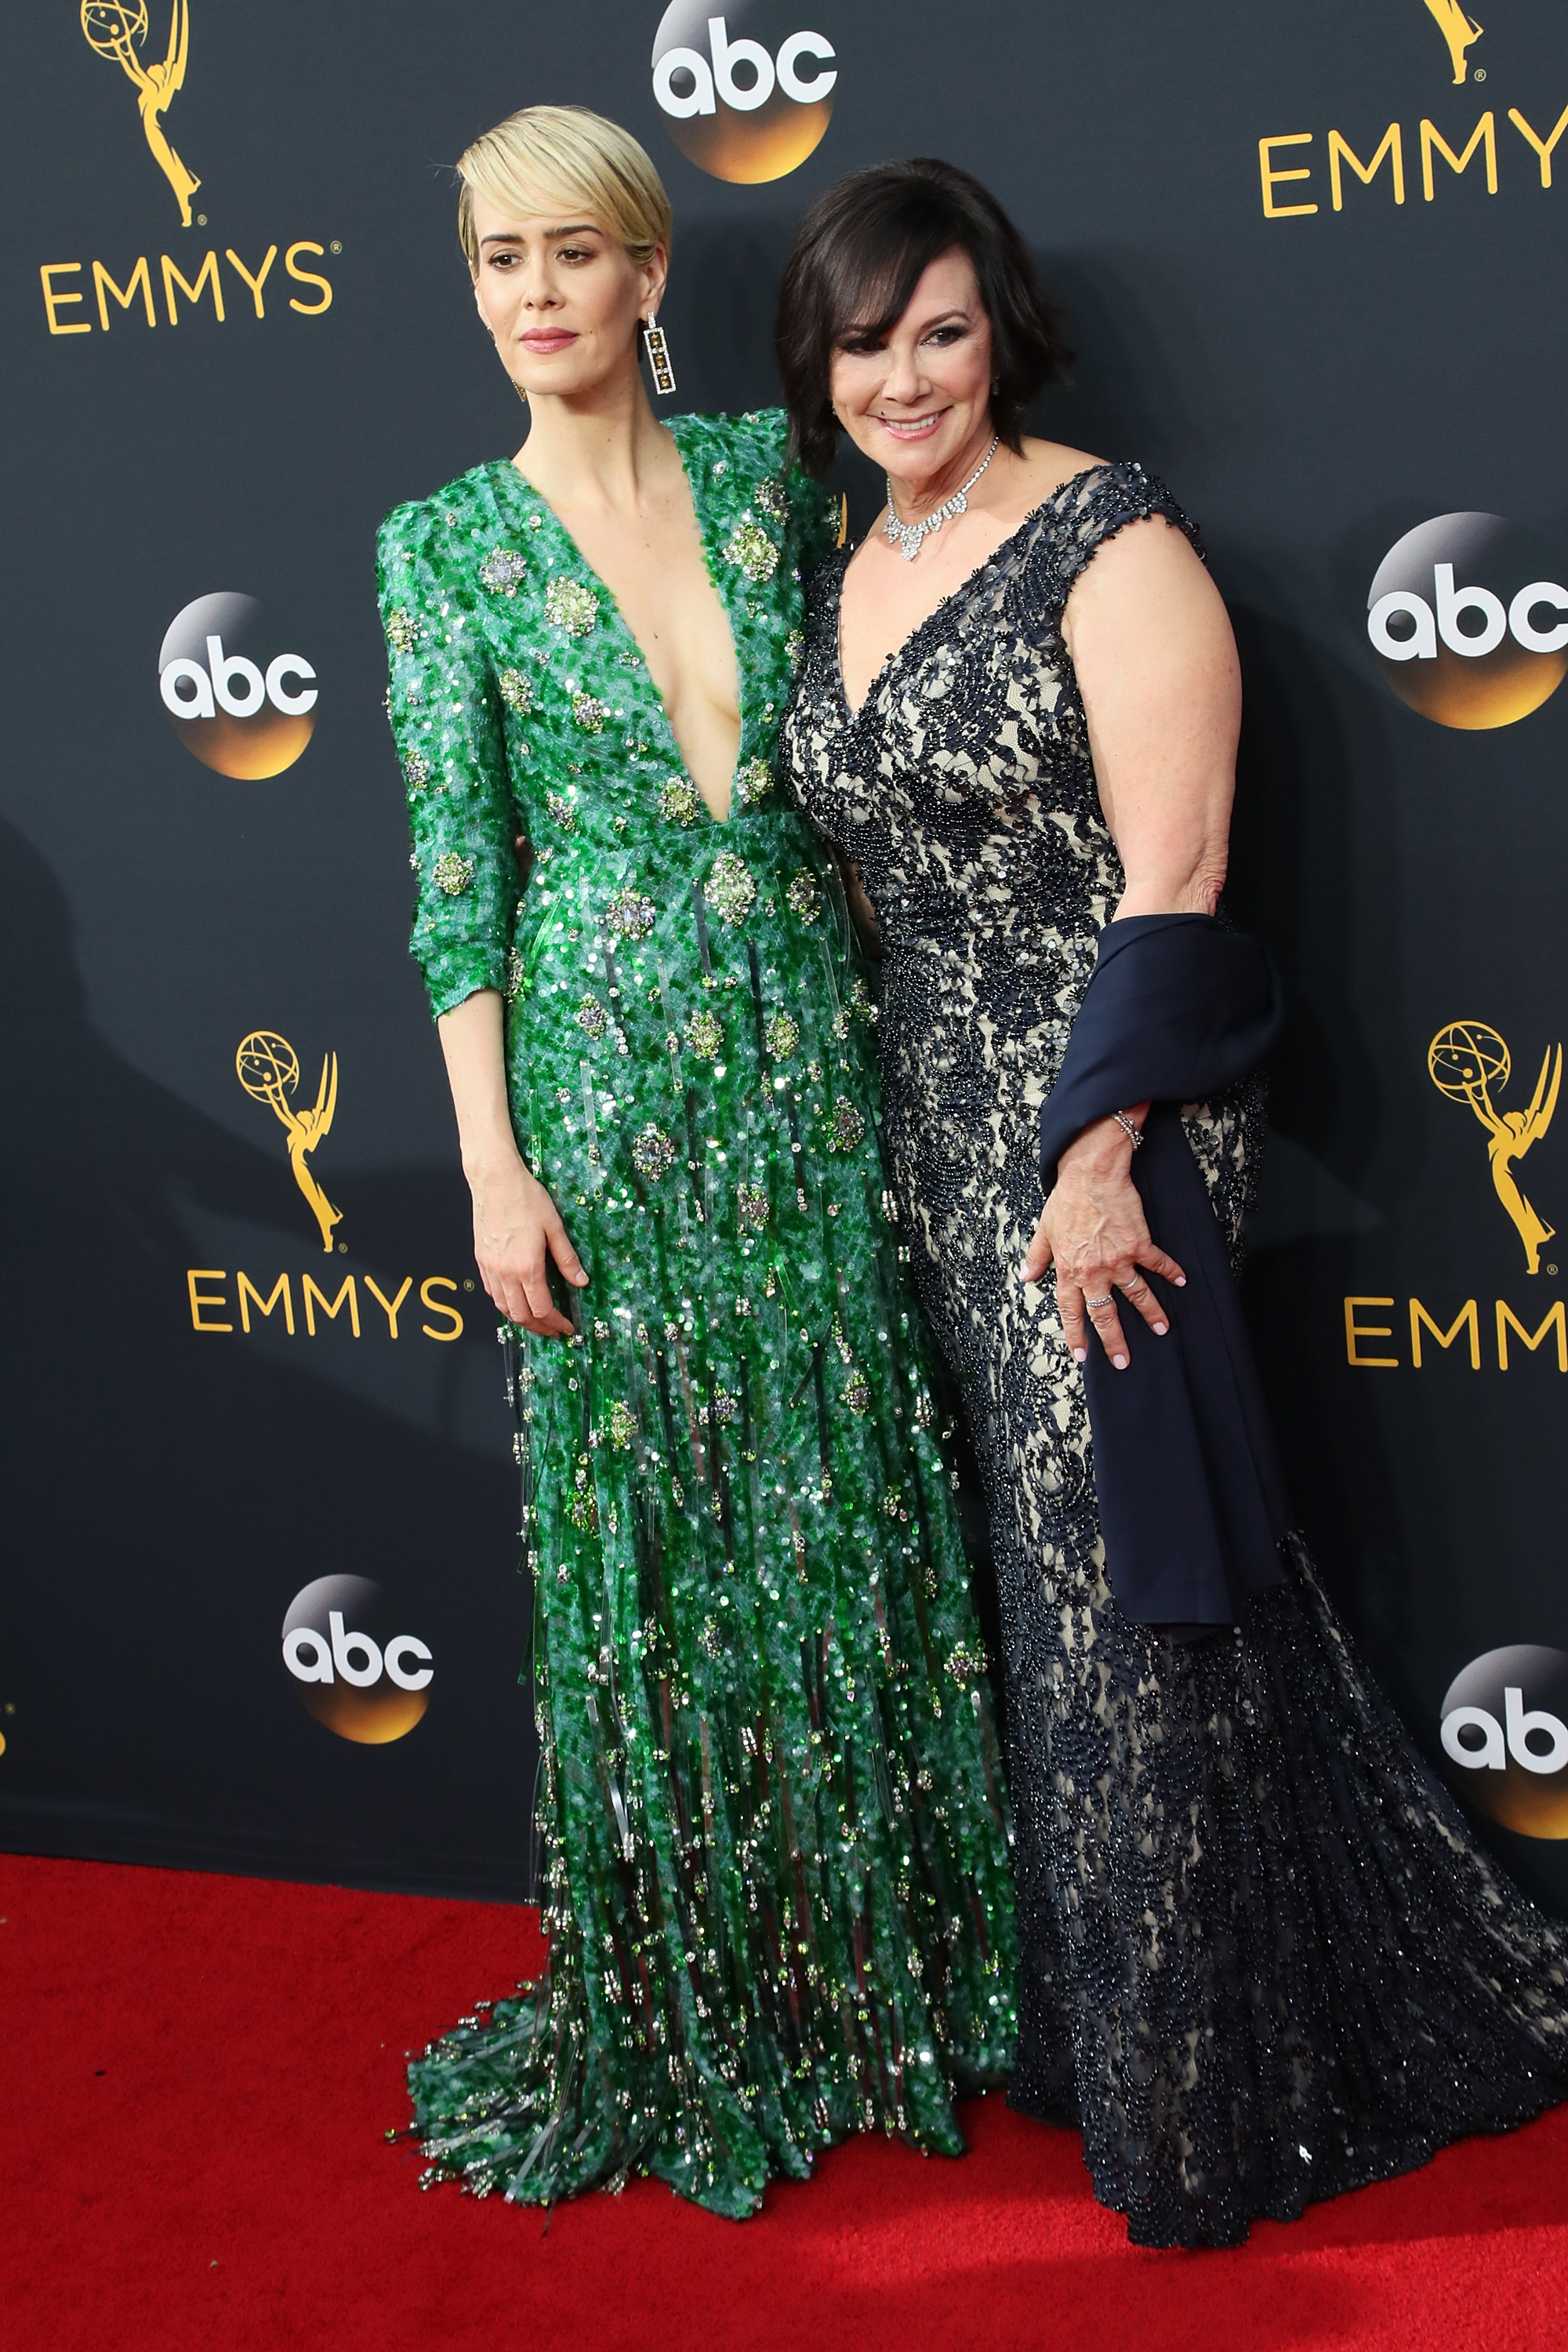 Actress Sarah Paulson and Prosecutor/author Marcia Clark arrive at the 68th Annual Primetime Emmy Awards at the Microsoft Theater on September 18, 2016 in Los Angeles, California.